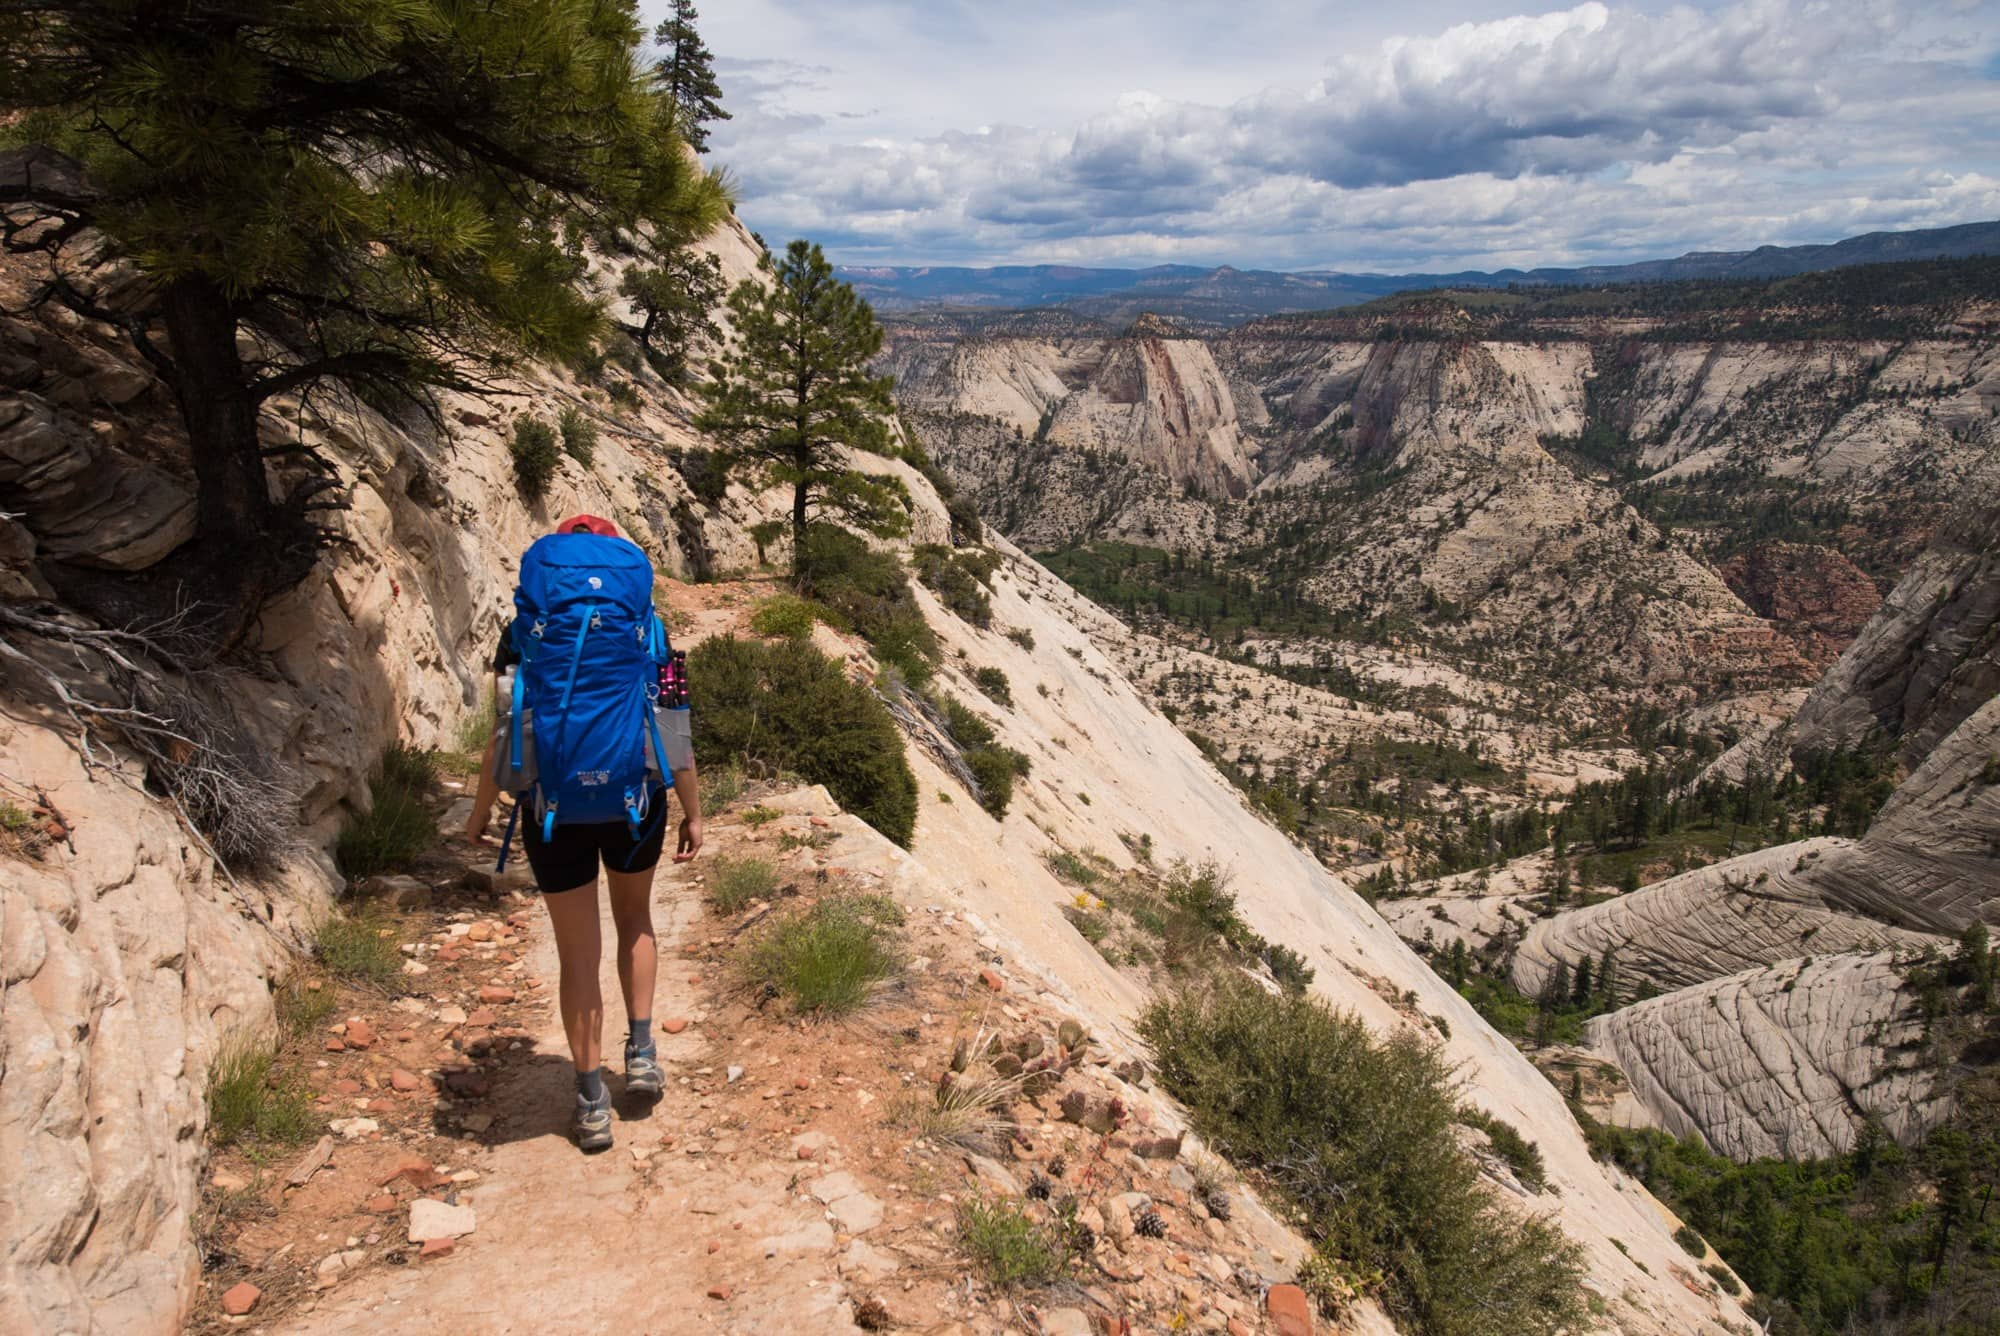 Get the scoop on the best backpacking backpacks for women that are comfortable and lightweight and learn how to choose the best pack for you.